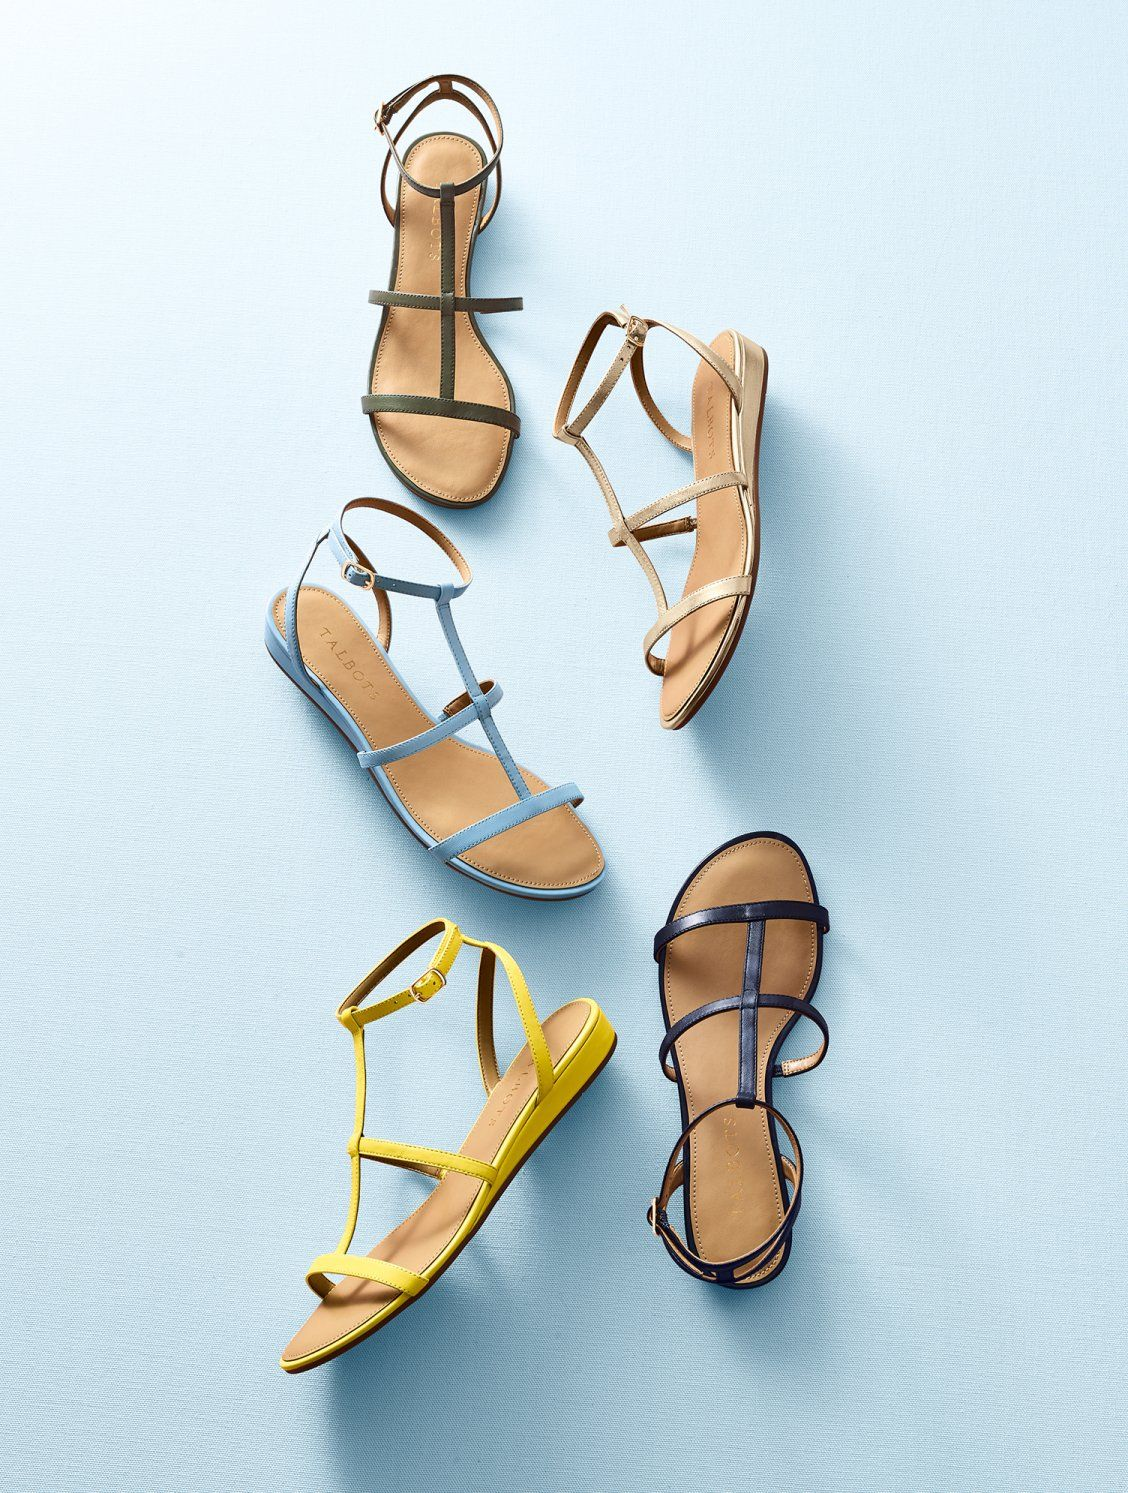 The Classic Gladiator Sandal Gets A Little Lift With A Modest Wedge Heel Multiple Straps Hold Your Foot In Place For A Comfortable Stylish Shoes Shoes Sandals